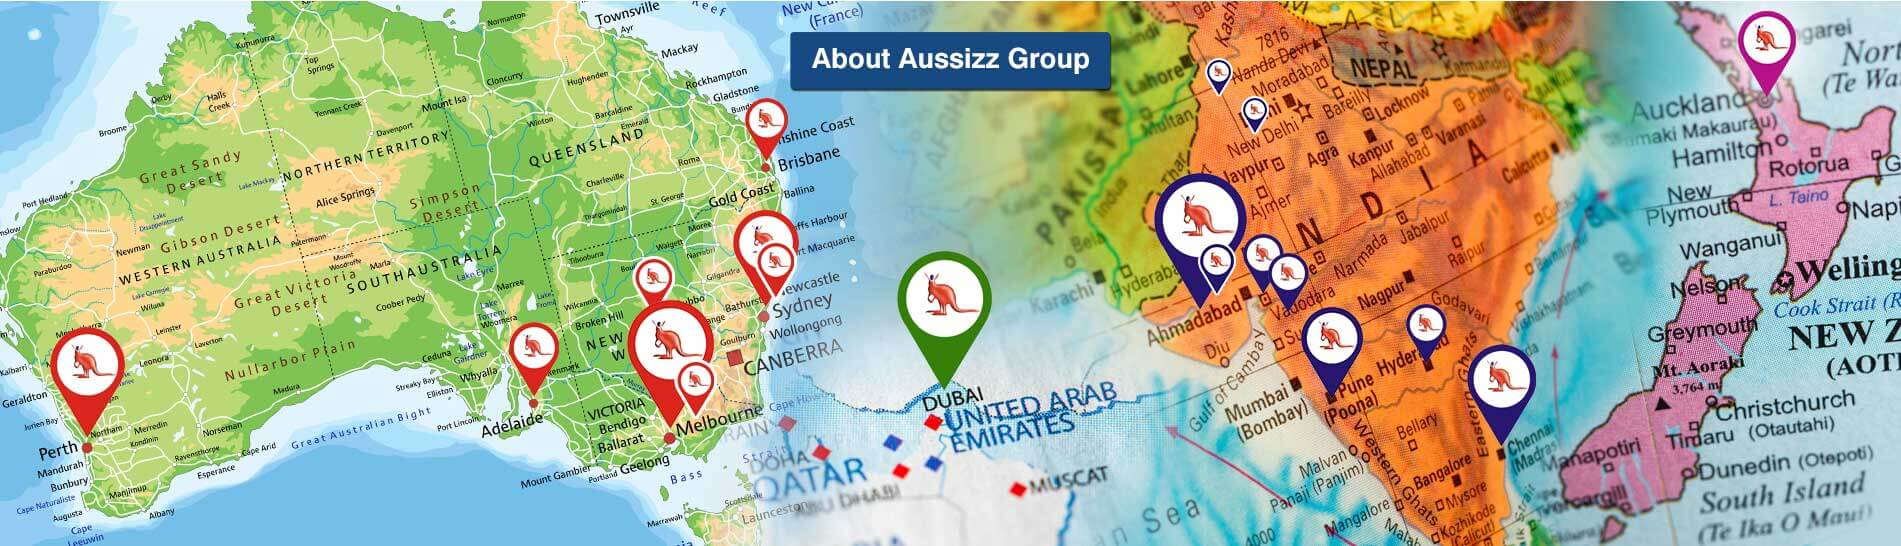 Aussizz Map